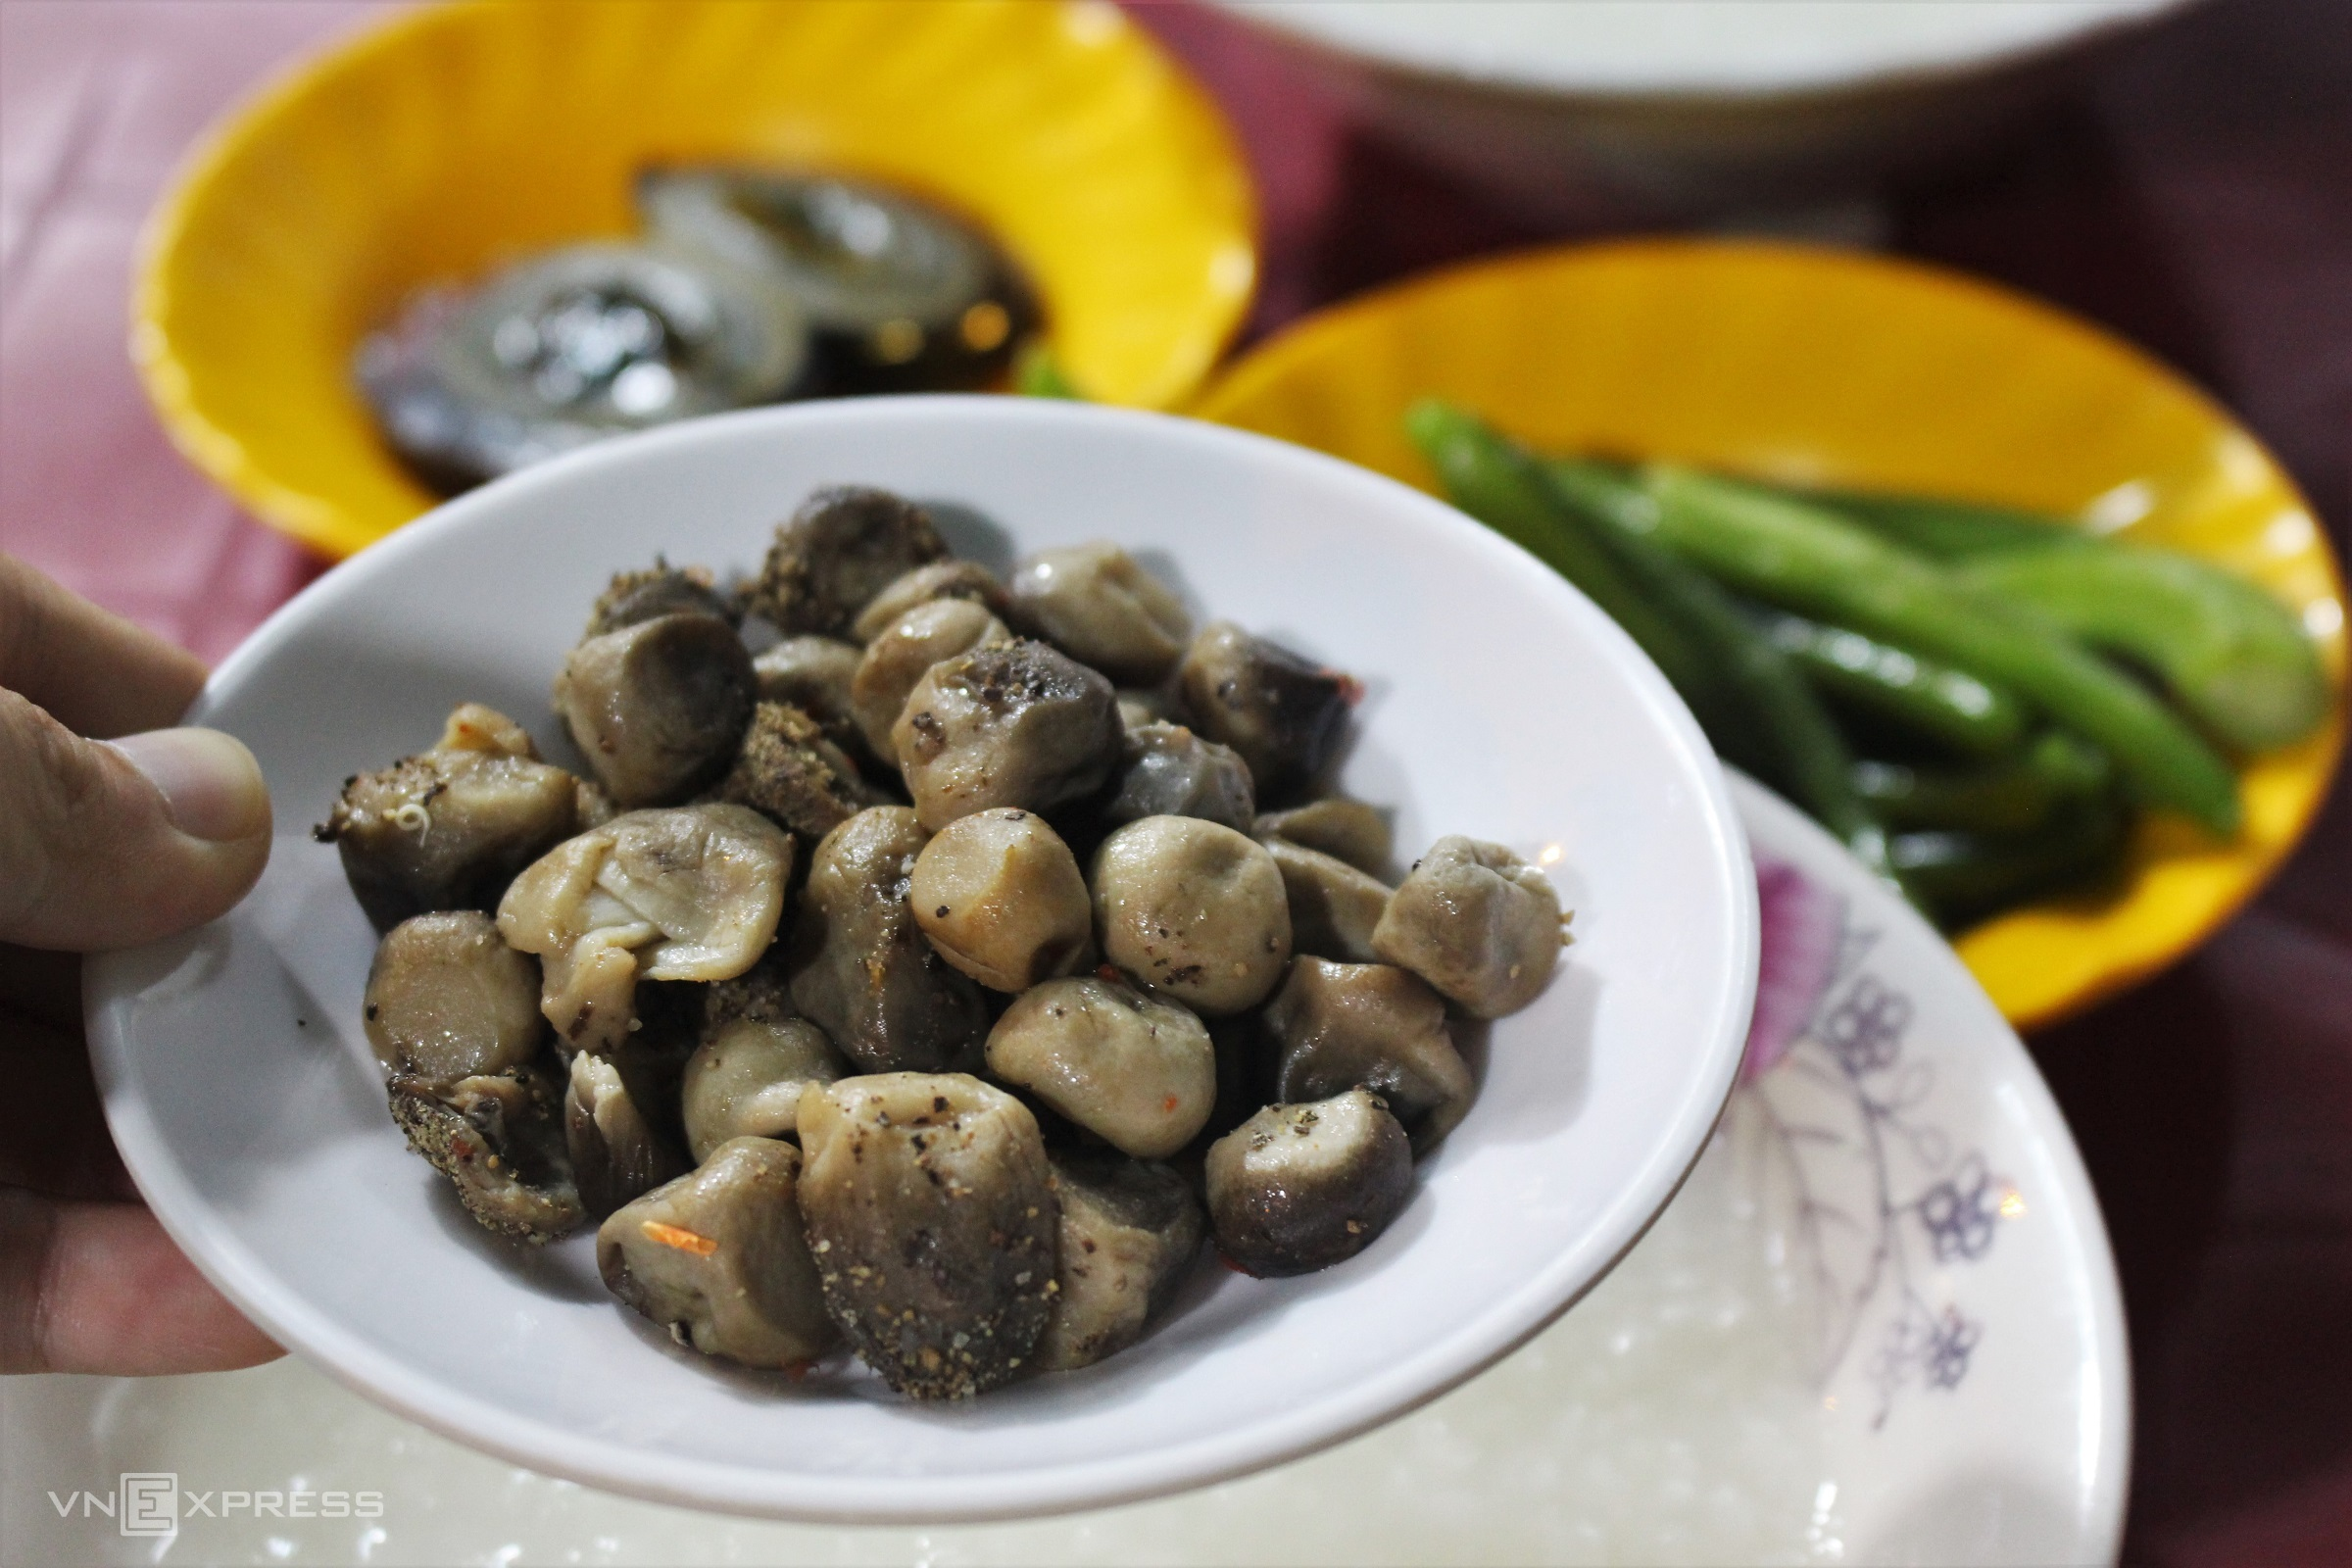 Braised mushroom with black pepper, steamed duck eggs with vegetable, string beans, stir-fried ladies' fingers and 2 white porridge portions are priced at VND 45,000 ($1,96). The dishes are well-seasoned and at a very economical price. Photo by VnExpress/Huynh Nhi.